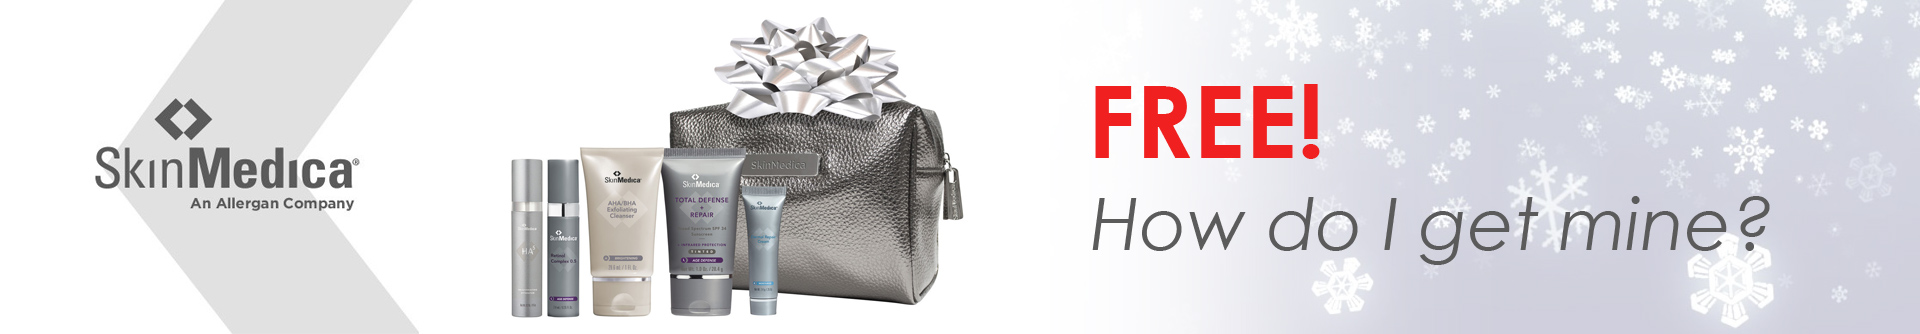 Free cosmetics bag full of your favorite SkinMedica products!